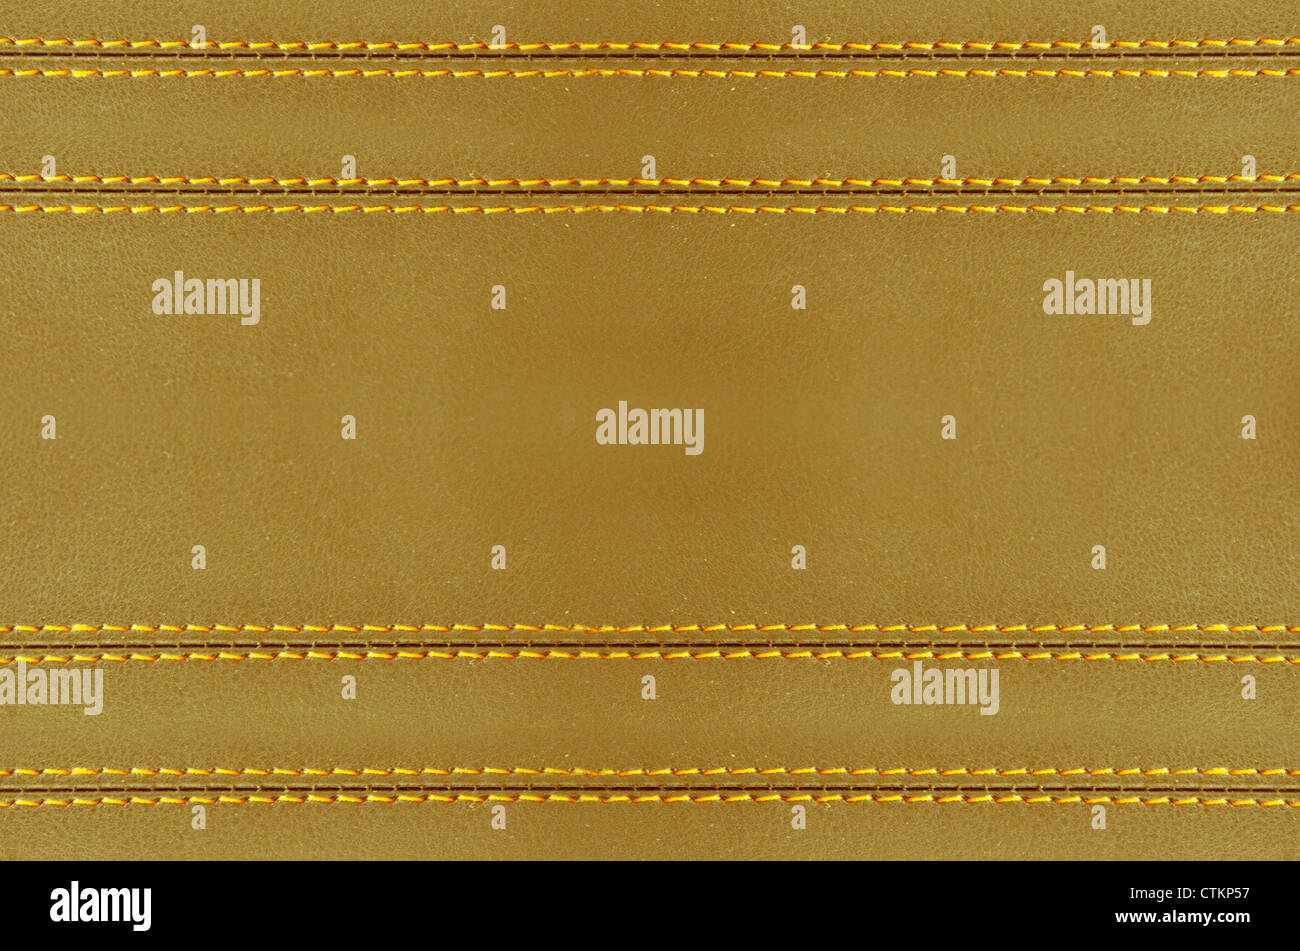 Golden Horizontal Stitched Leather Background Art Wallpaper